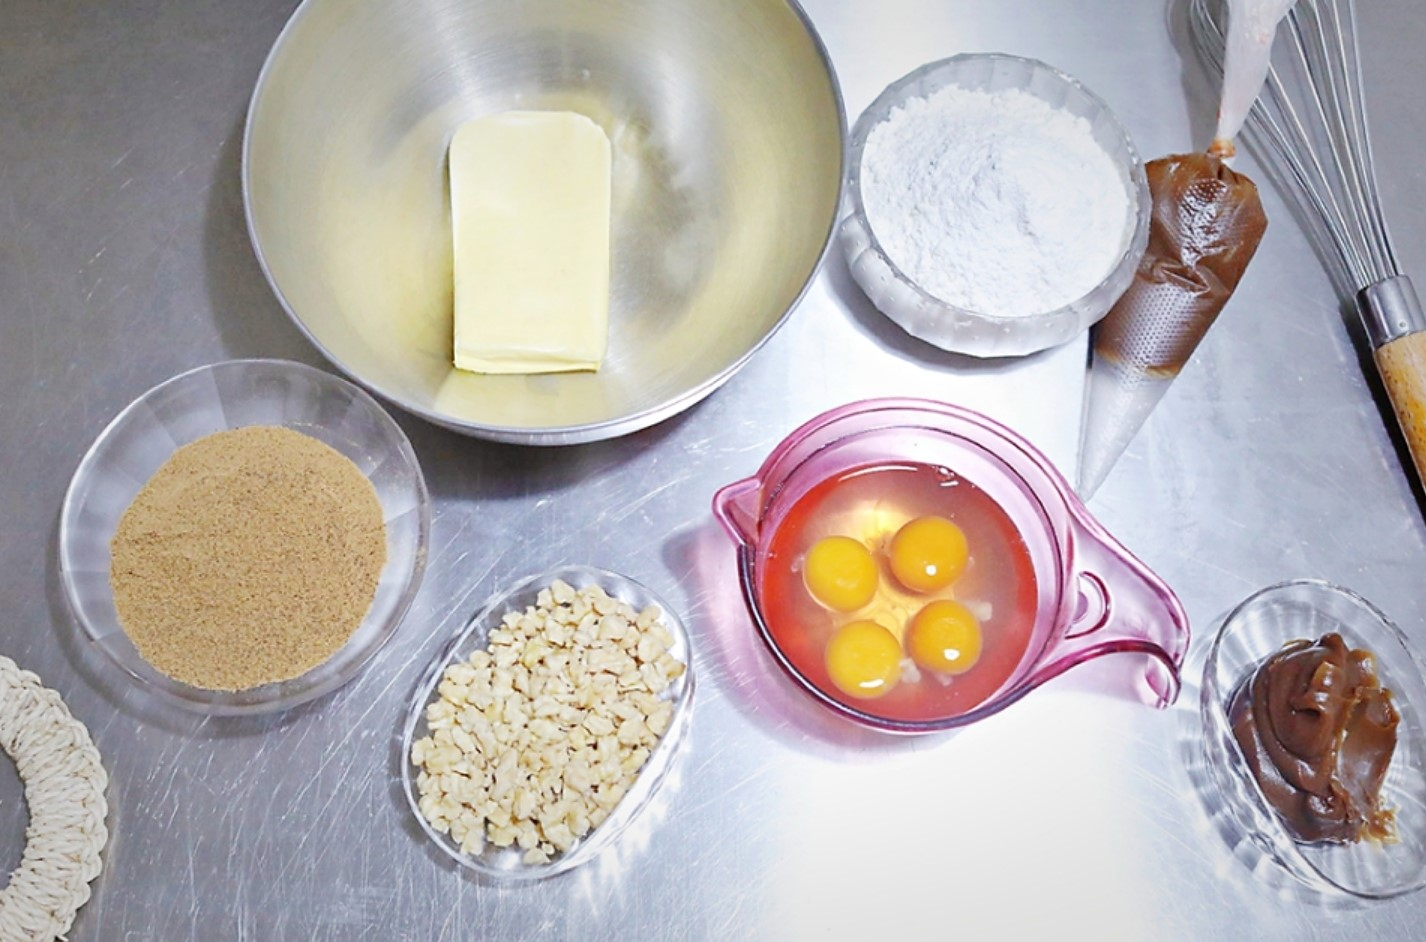 How to make the Jujube Paste Pound Cake